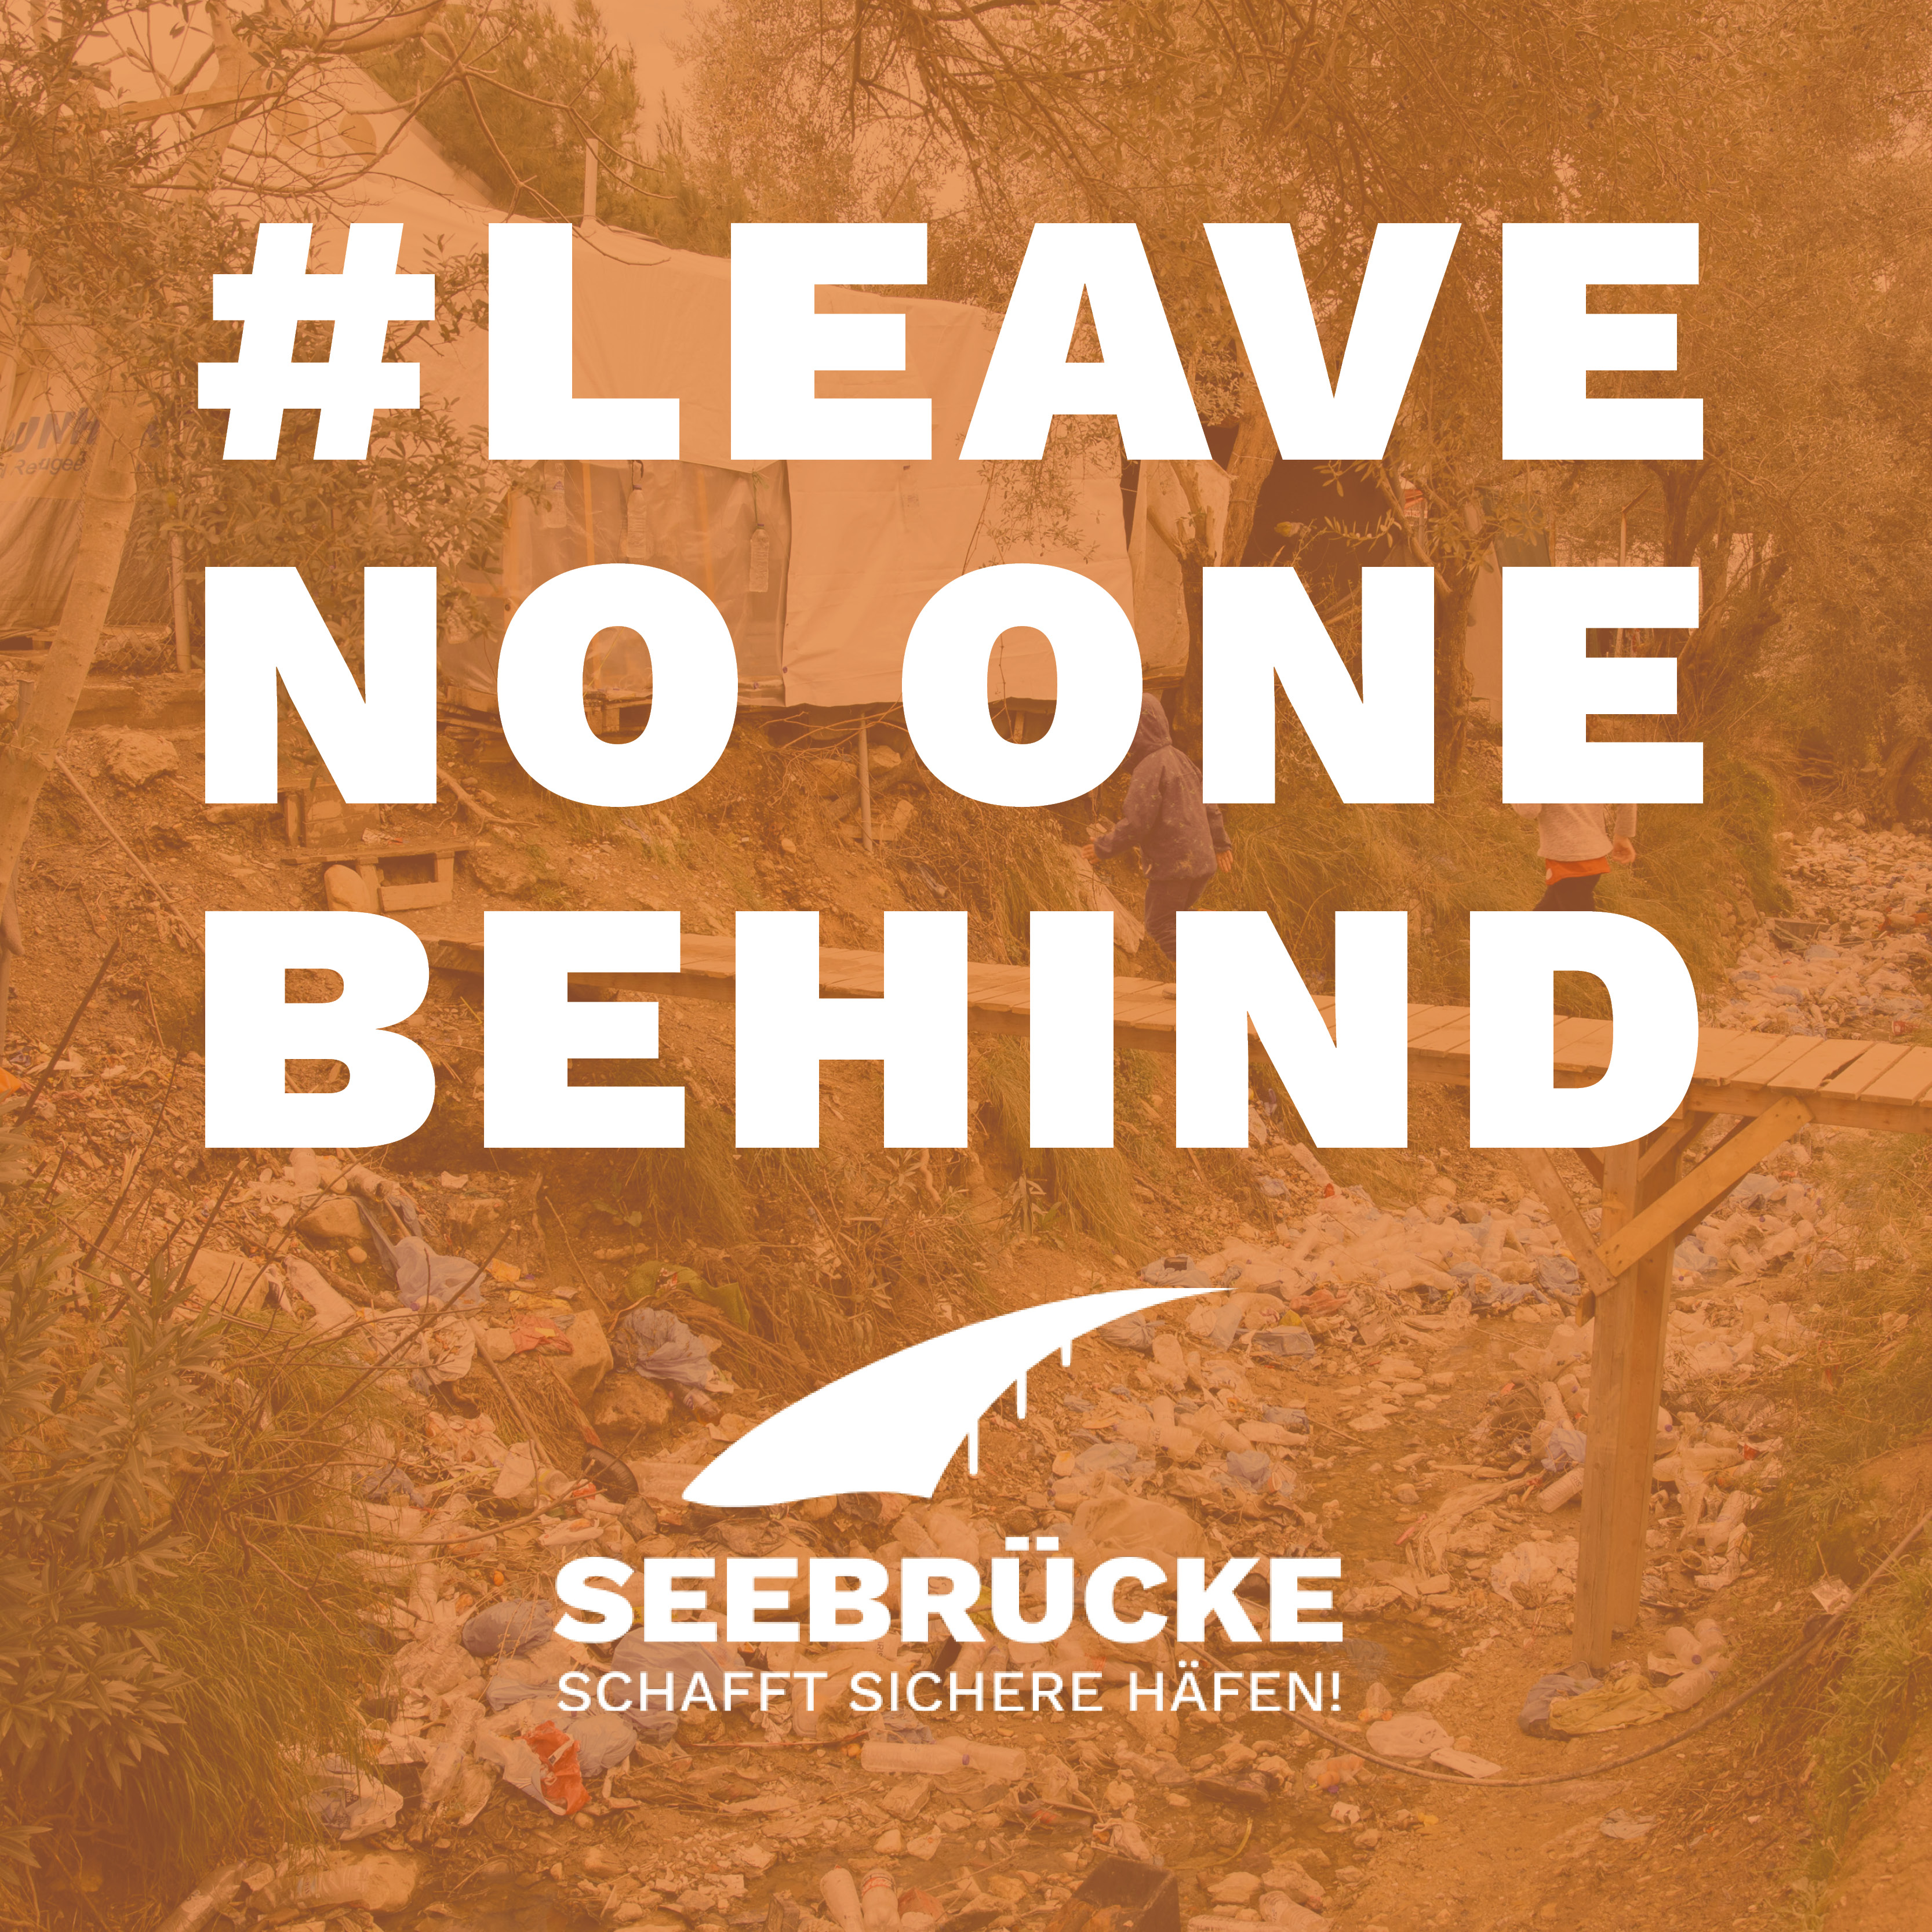 Leave No One Behind Image